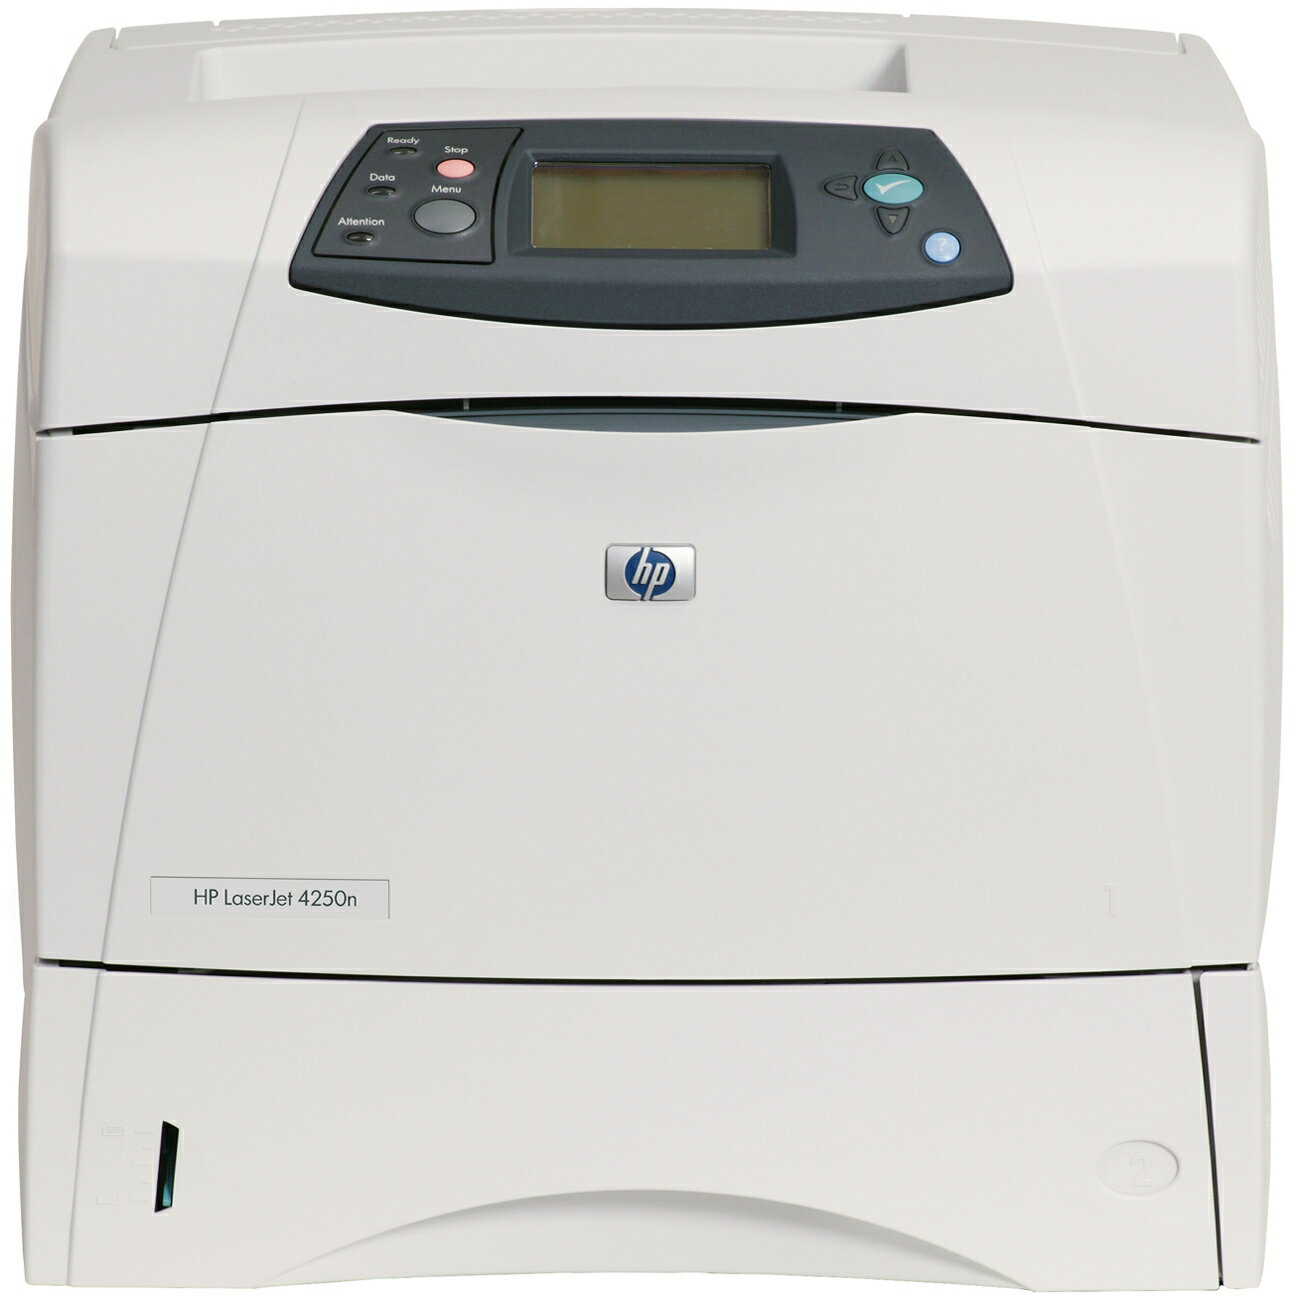 HP LaserJet 4250N Laser Printer - Monochrome - 1200 x 1200 dpi Print - Plain Paper Print - Desktop - 45 ppm Mono Print - Letter, Legal, Executive, Statement, Envelope No. 10, Monarch Envelope, Custom Size - 200000 Duty Cycle - Manual Duplex Print - Ethern 0